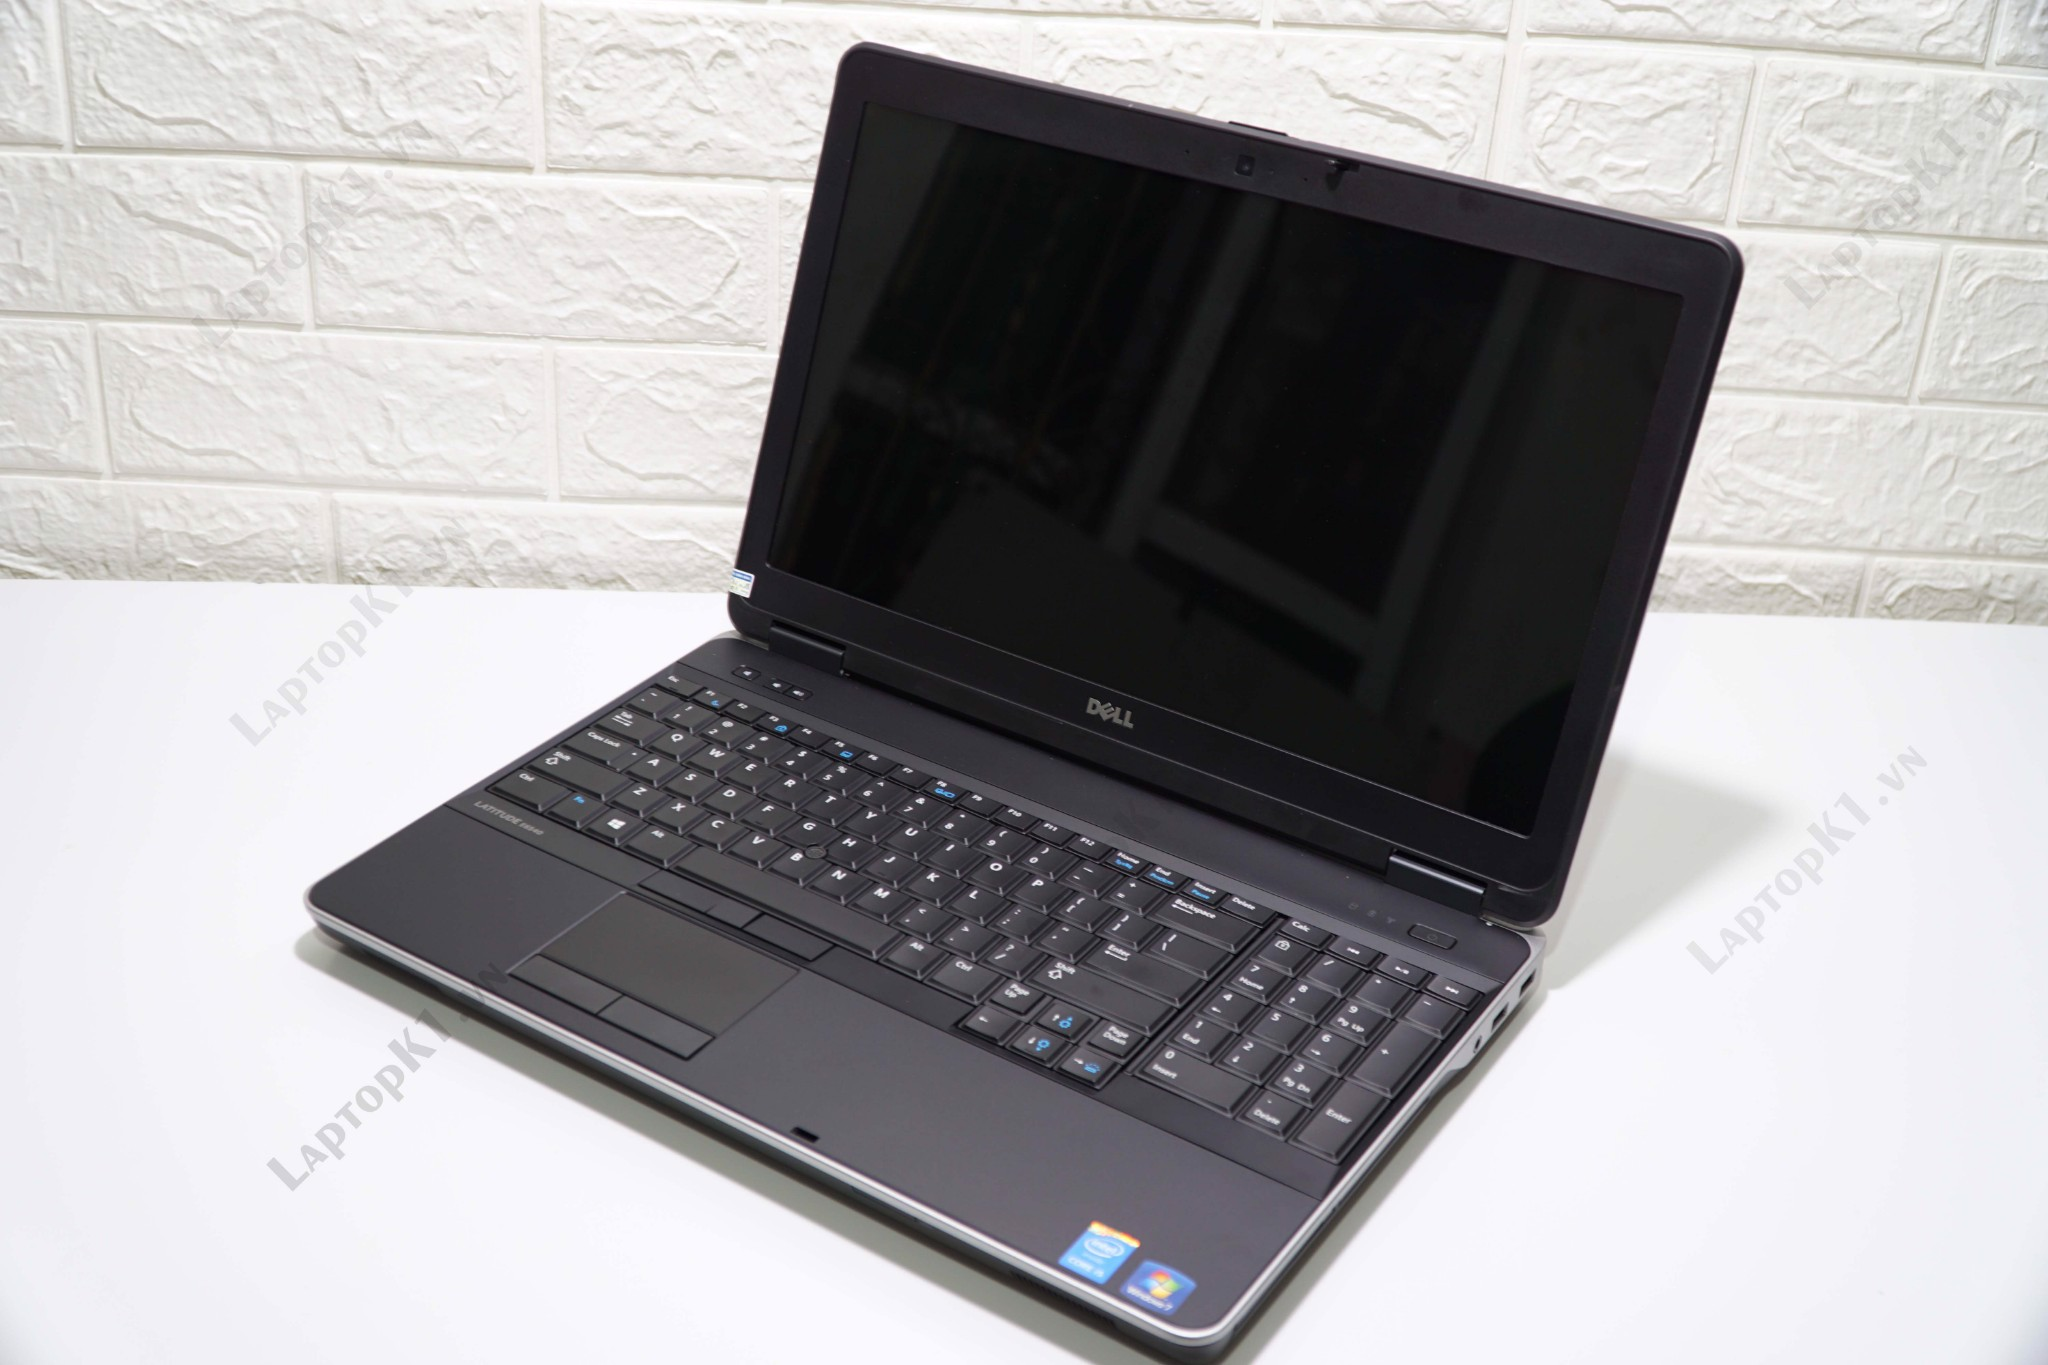 Laptop Dell Latitude E6540 (Core i5 4300M, RAM 4GB, HDD 500GB, Intel HD Graphics 4600)